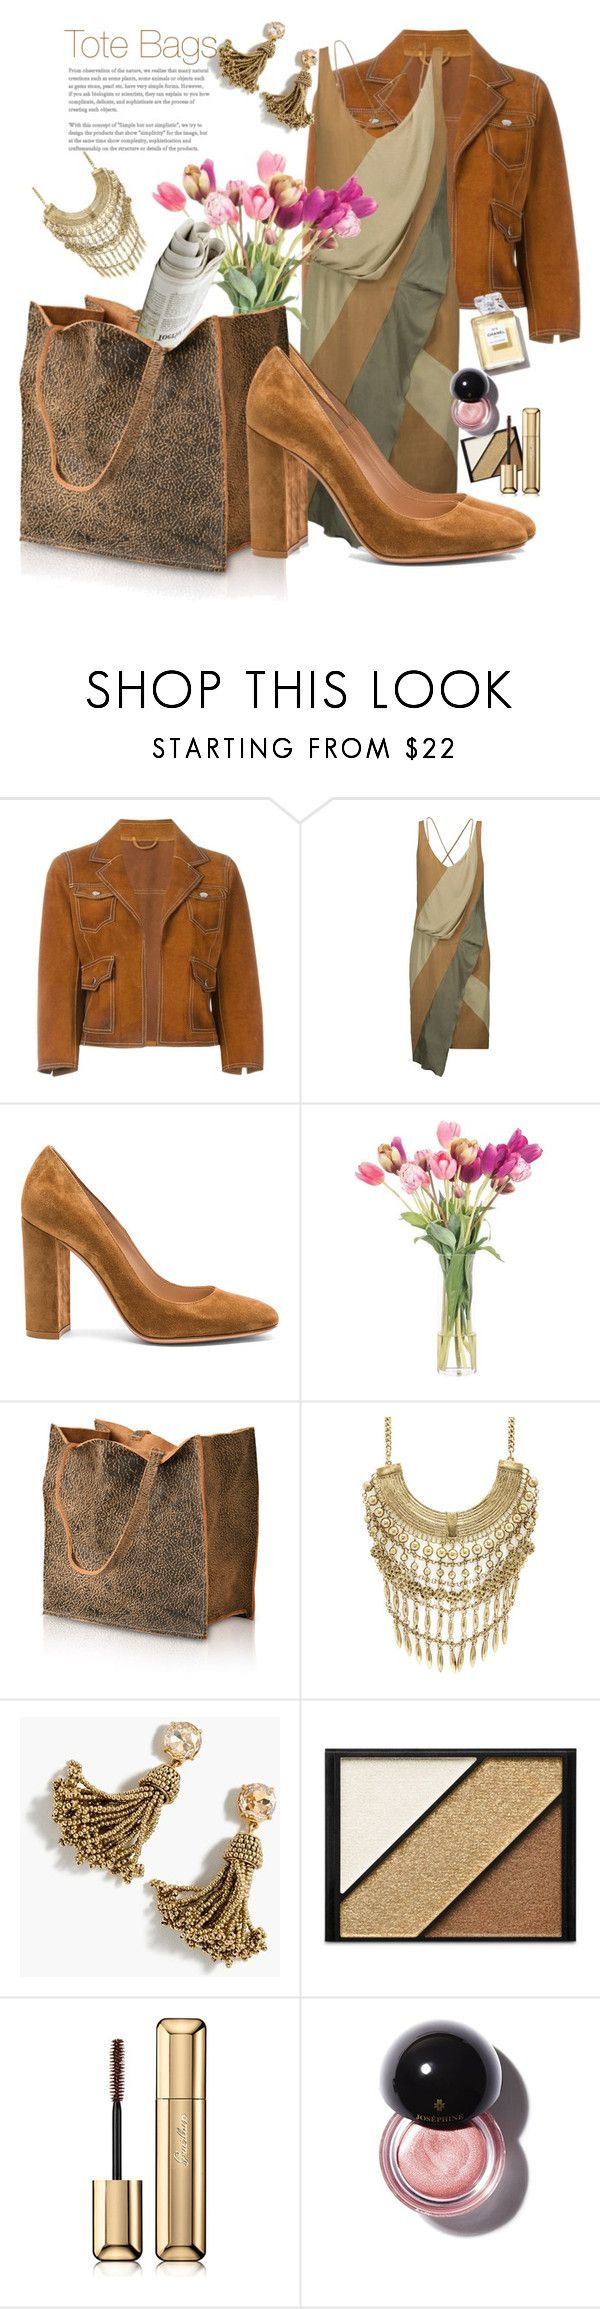 """Tote Bags"" by marionmeyer ❤ liked on Polyvore featuring Dsquared2, Belstaff, Gianvito Rossi, NDI, Marabelle, J.Crew, Elizabeth Arden, Guerlain and totebags"